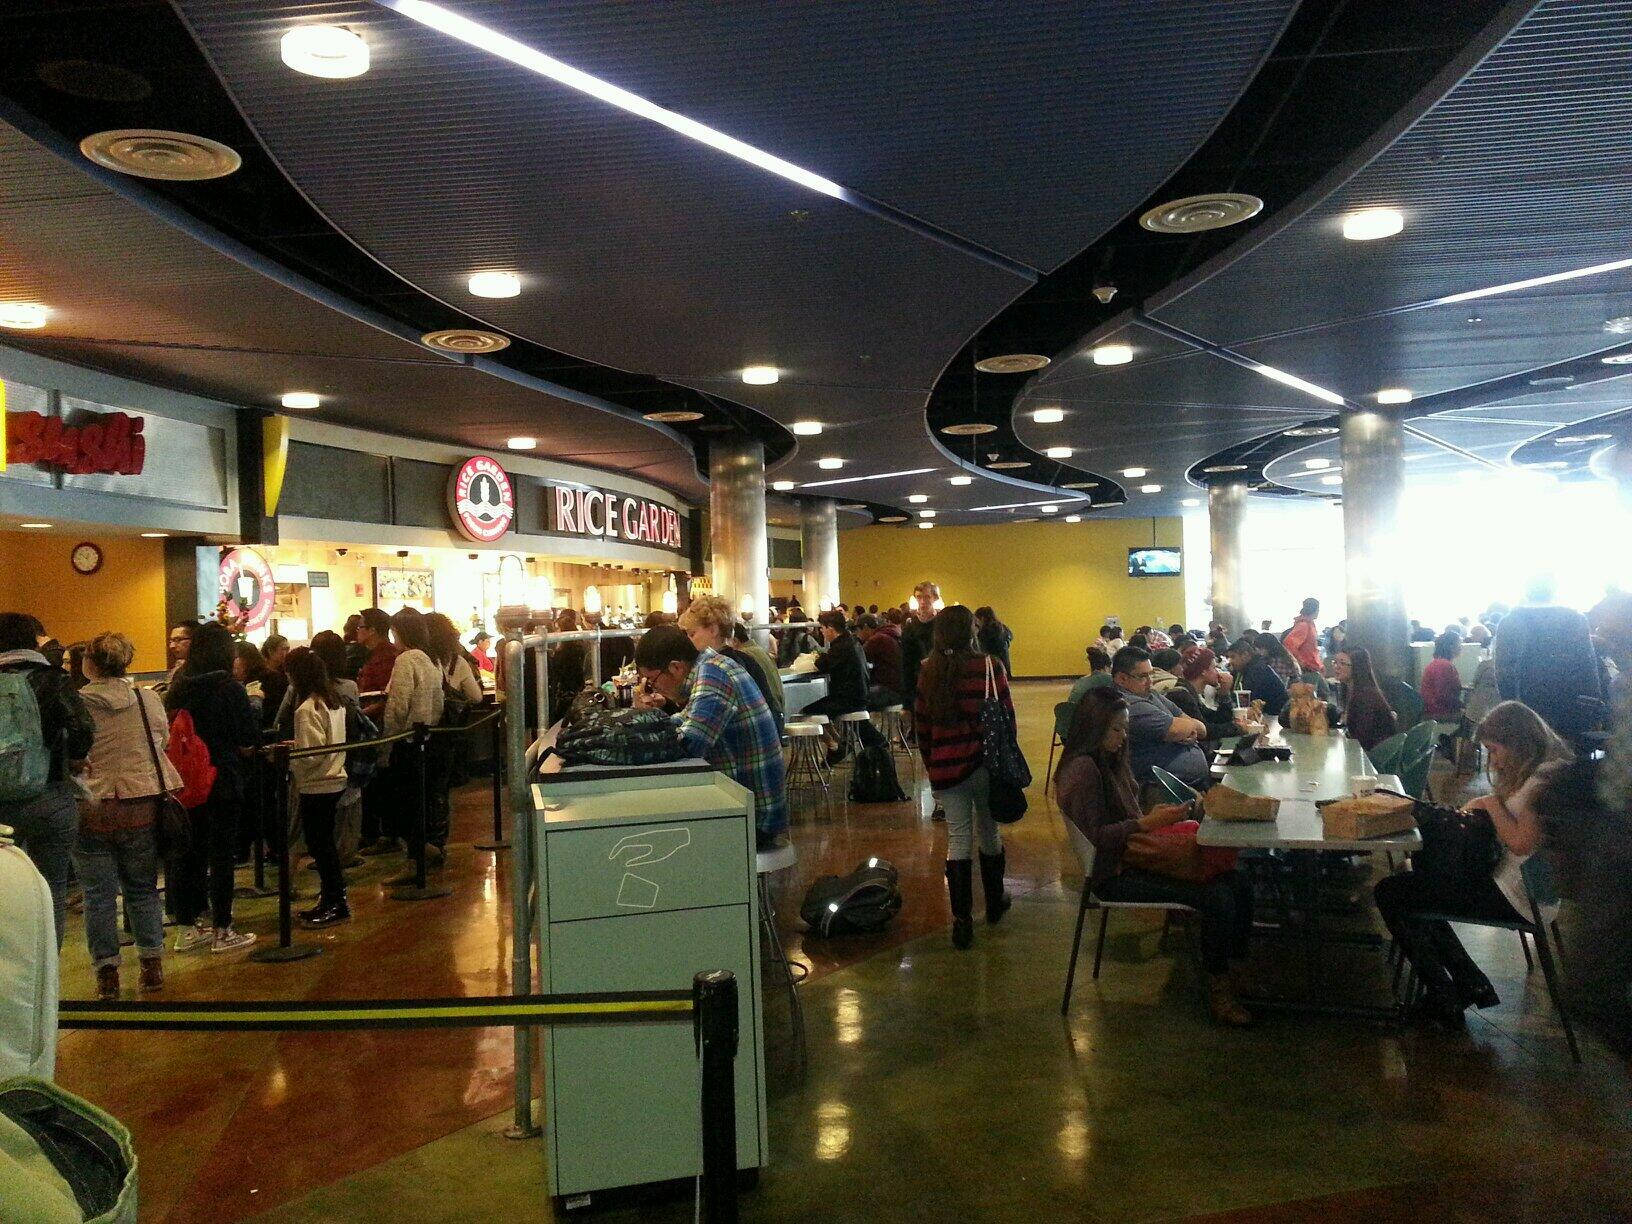 Cal State La On Twitter Csula Food Court Busy With Students Enjoying A Lunch Break Http T Co 5itxmhp9ob